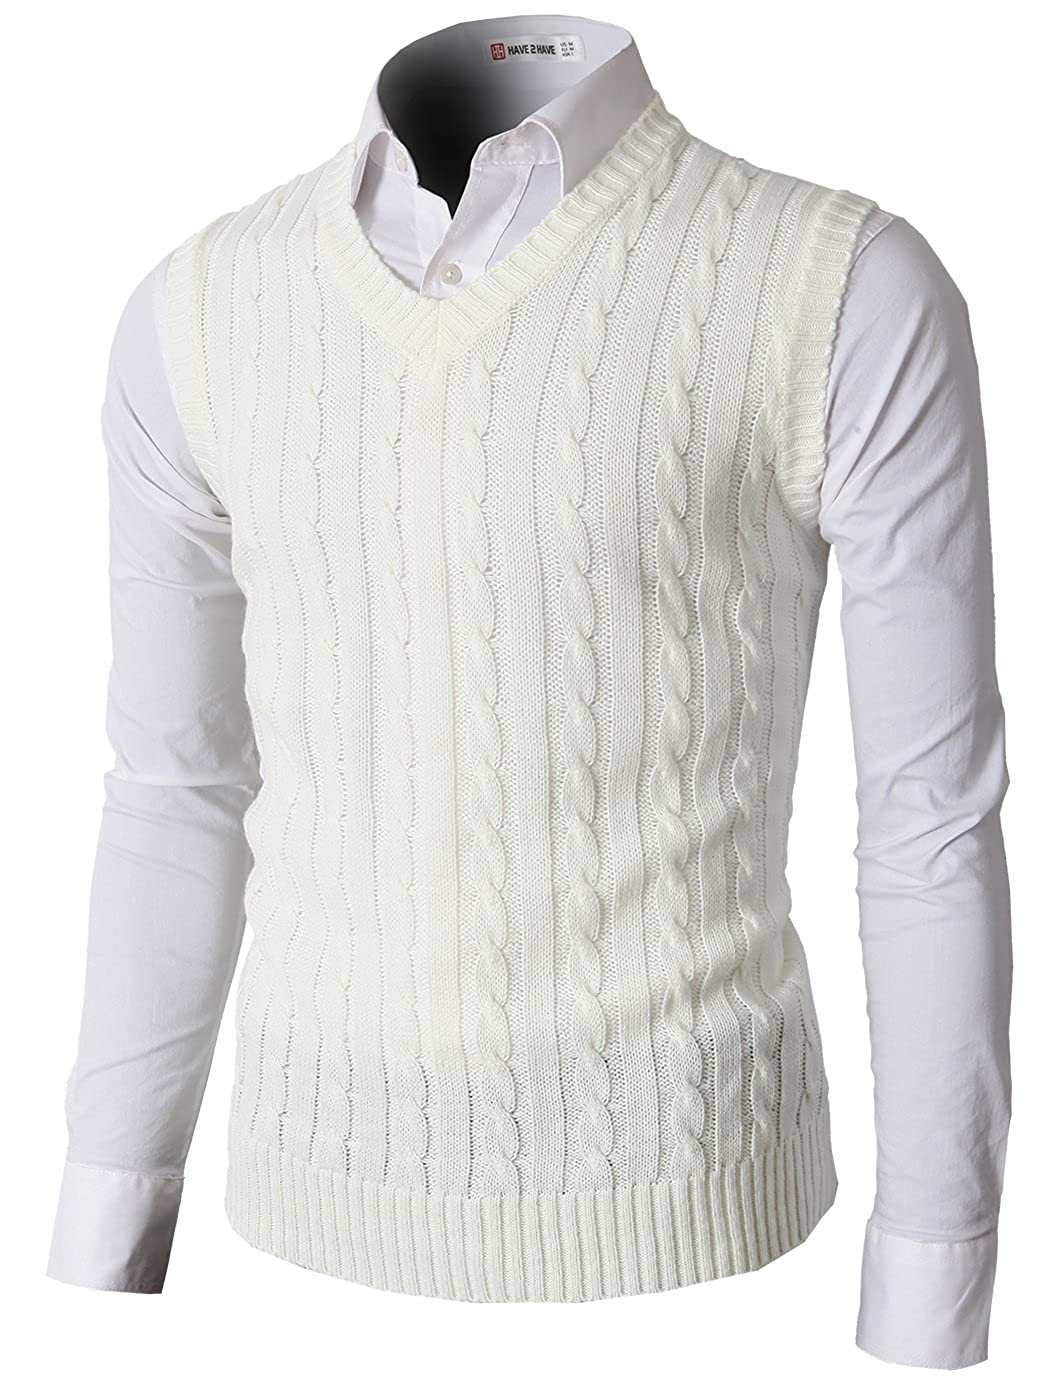 DressinGreatGatsbyClothesforMen H2H Mens Casual Knitted Slim Fit V-neck Vest With Twisted Patterned  AT vintagedancer.com